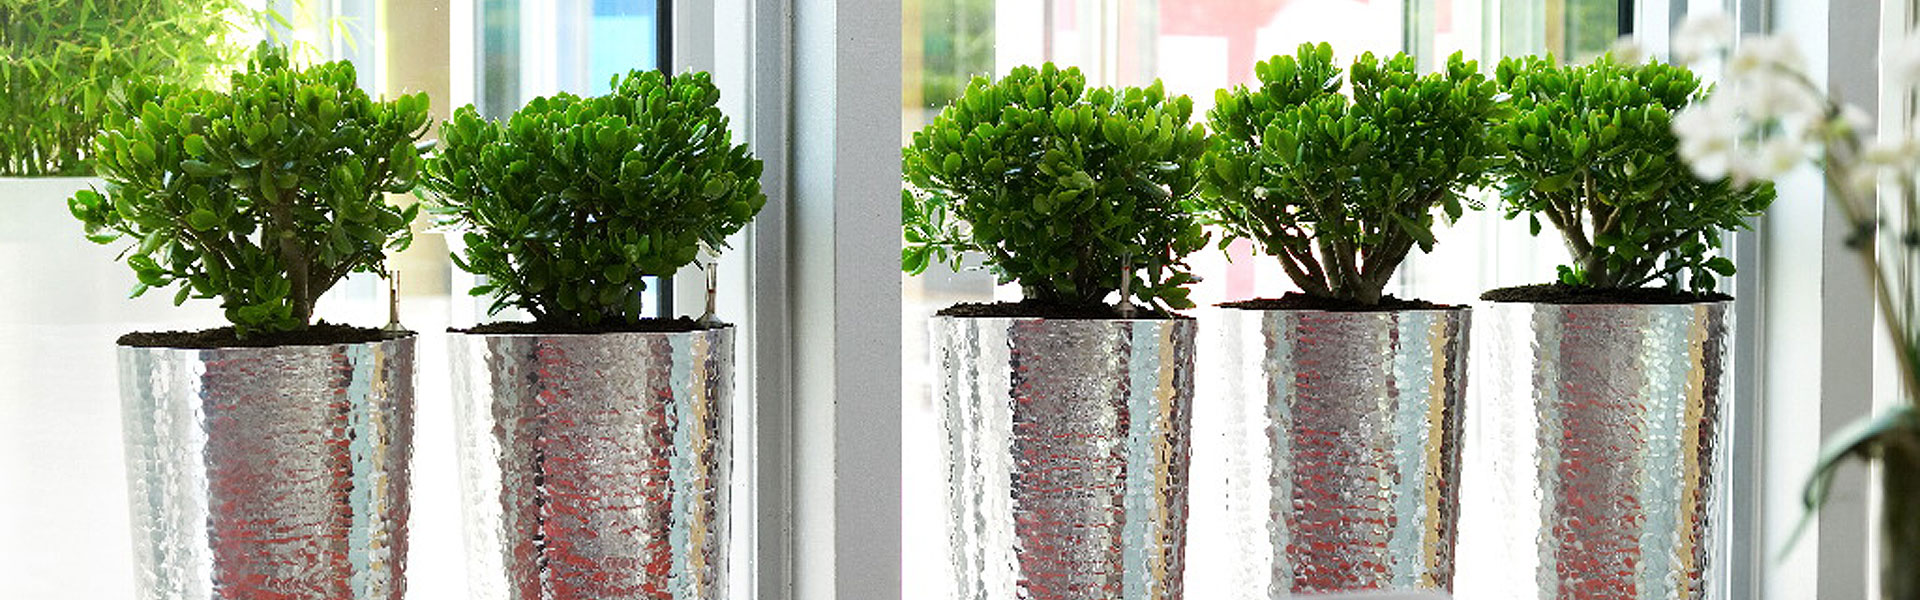 Eco friendly plants for the office